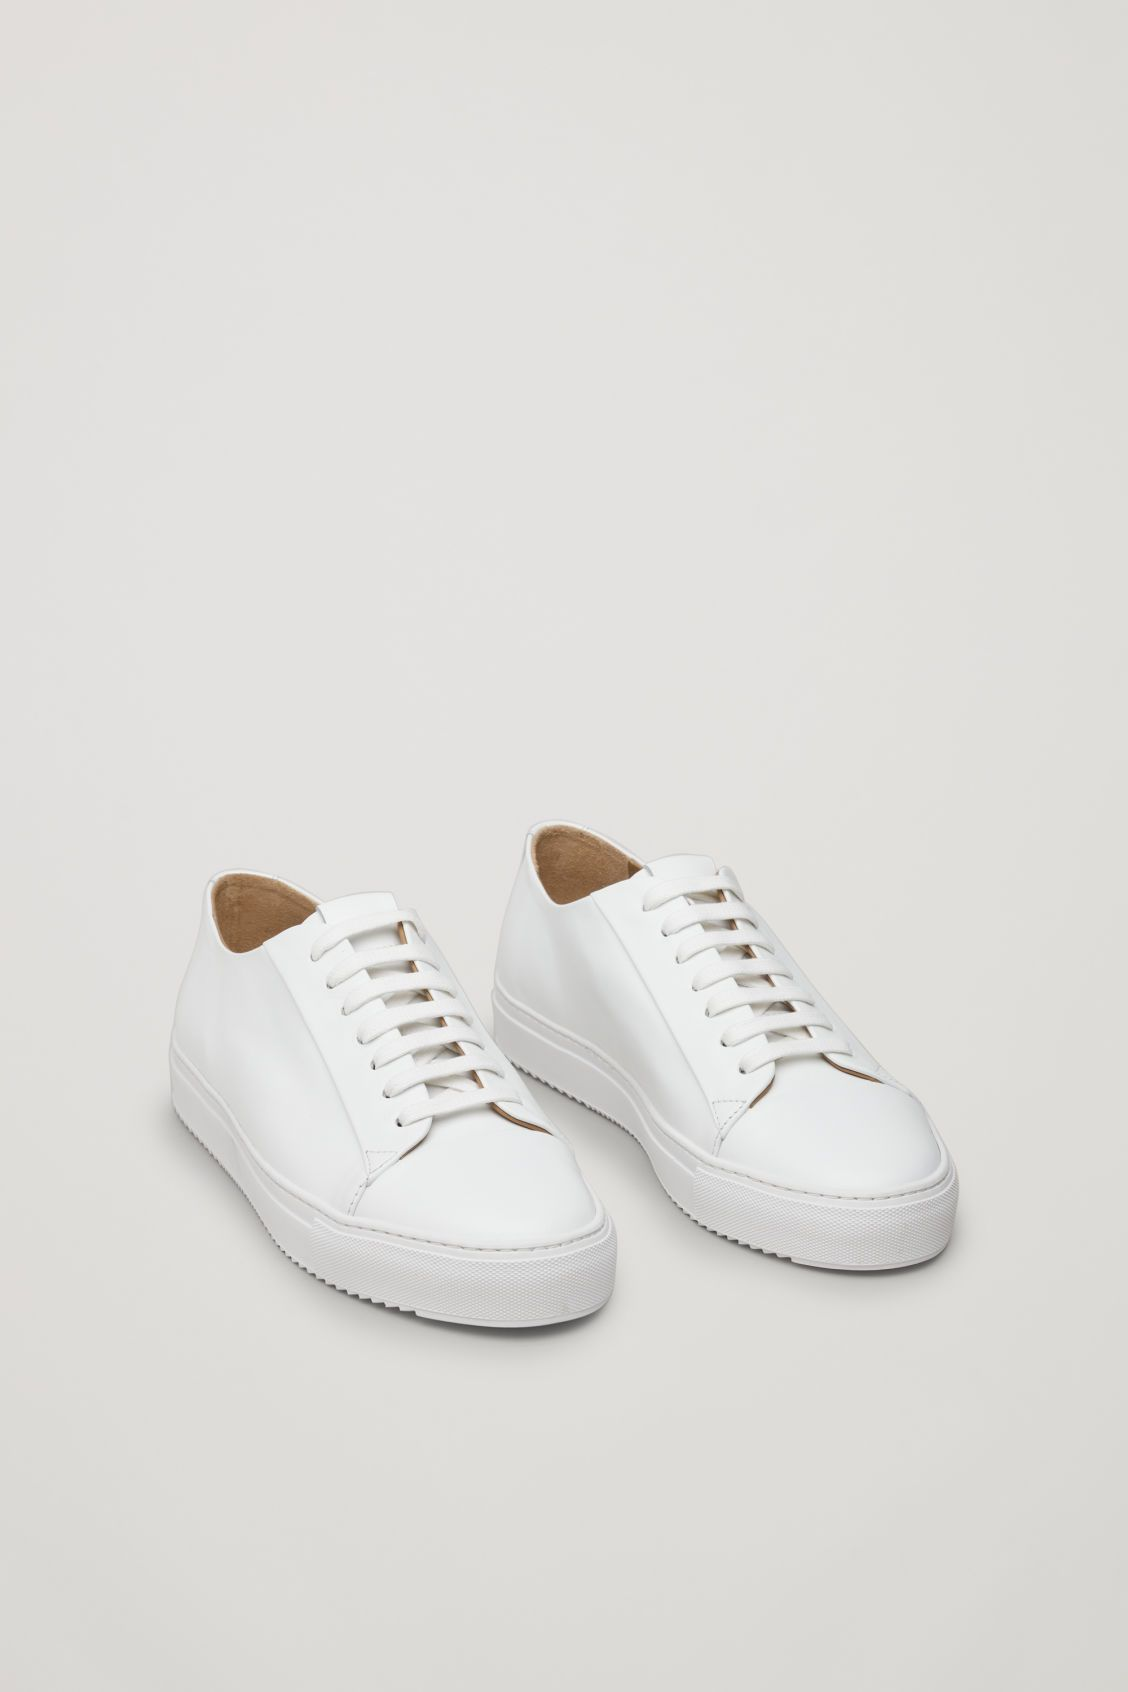 THICK-SOLED LEATHER SNEAKERS   Leather